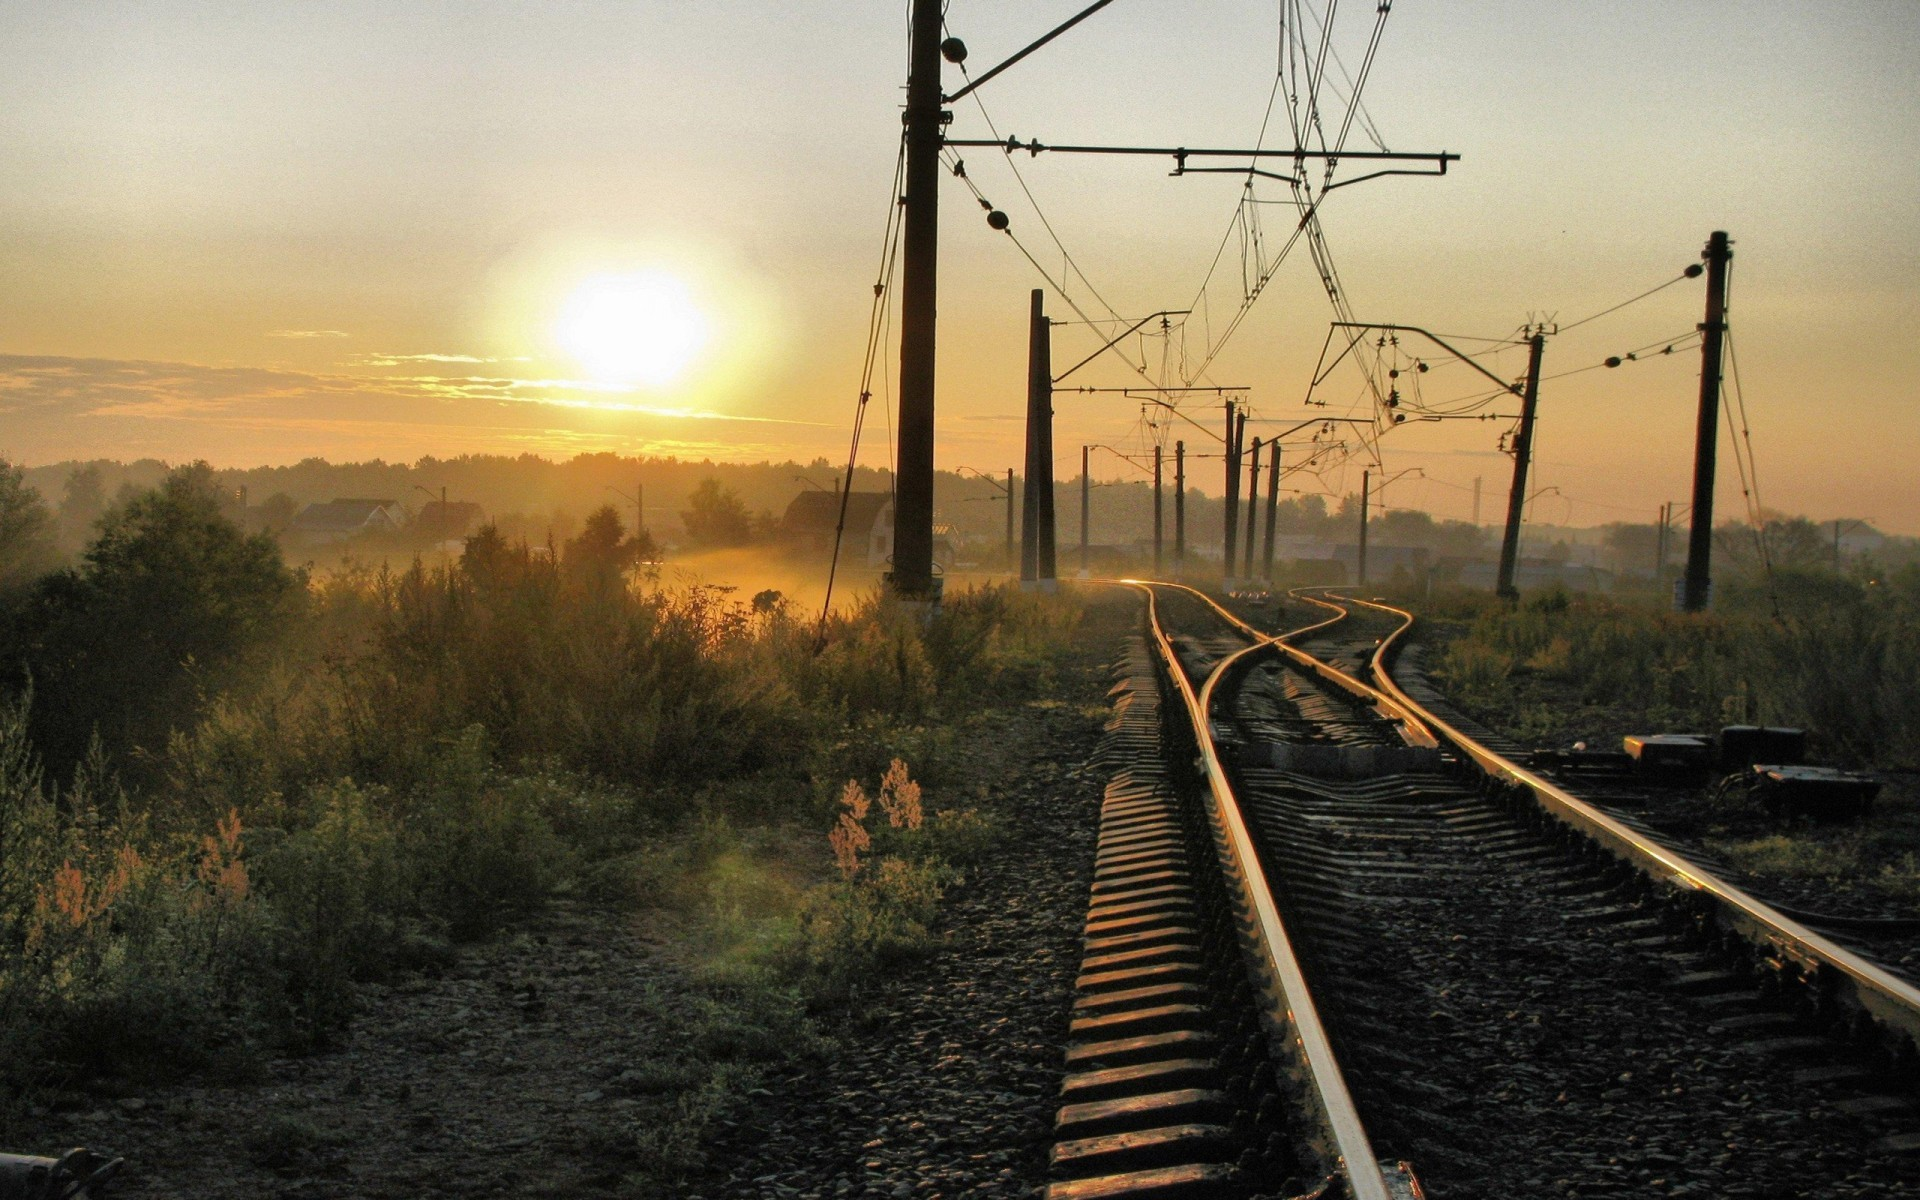 Russia trains railroad tracks HD Wallpaper